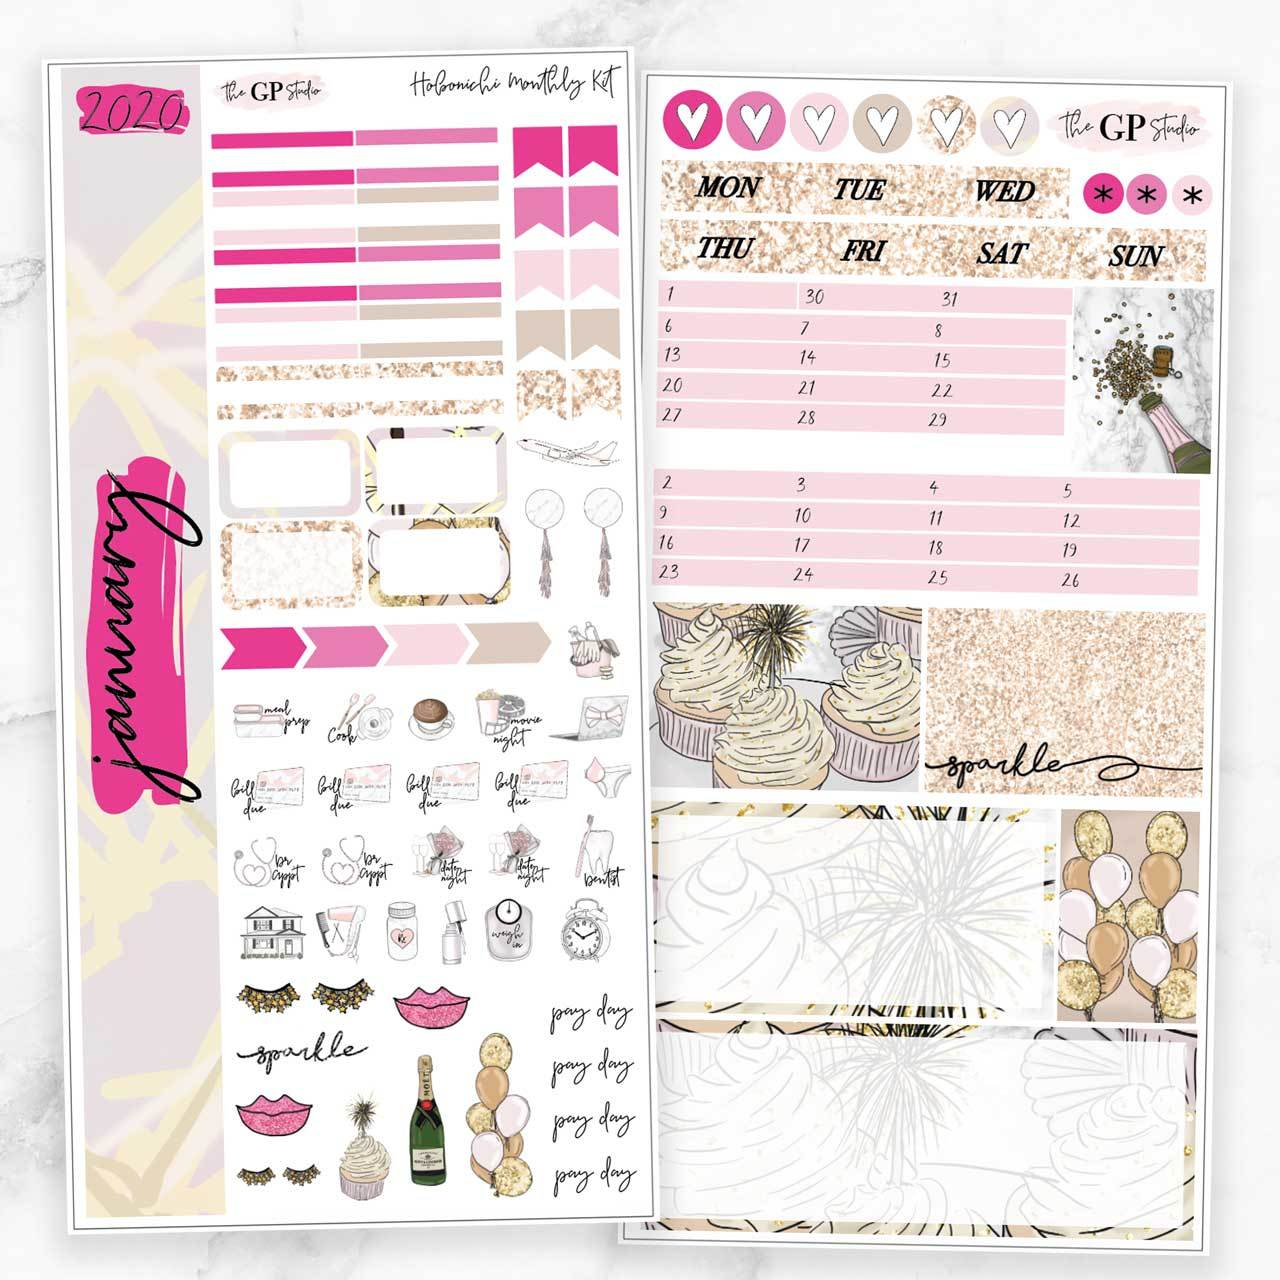 JANUARY 2020 MONTHLY Sticker Kit Hobonichi Week's Size-The GP Studio